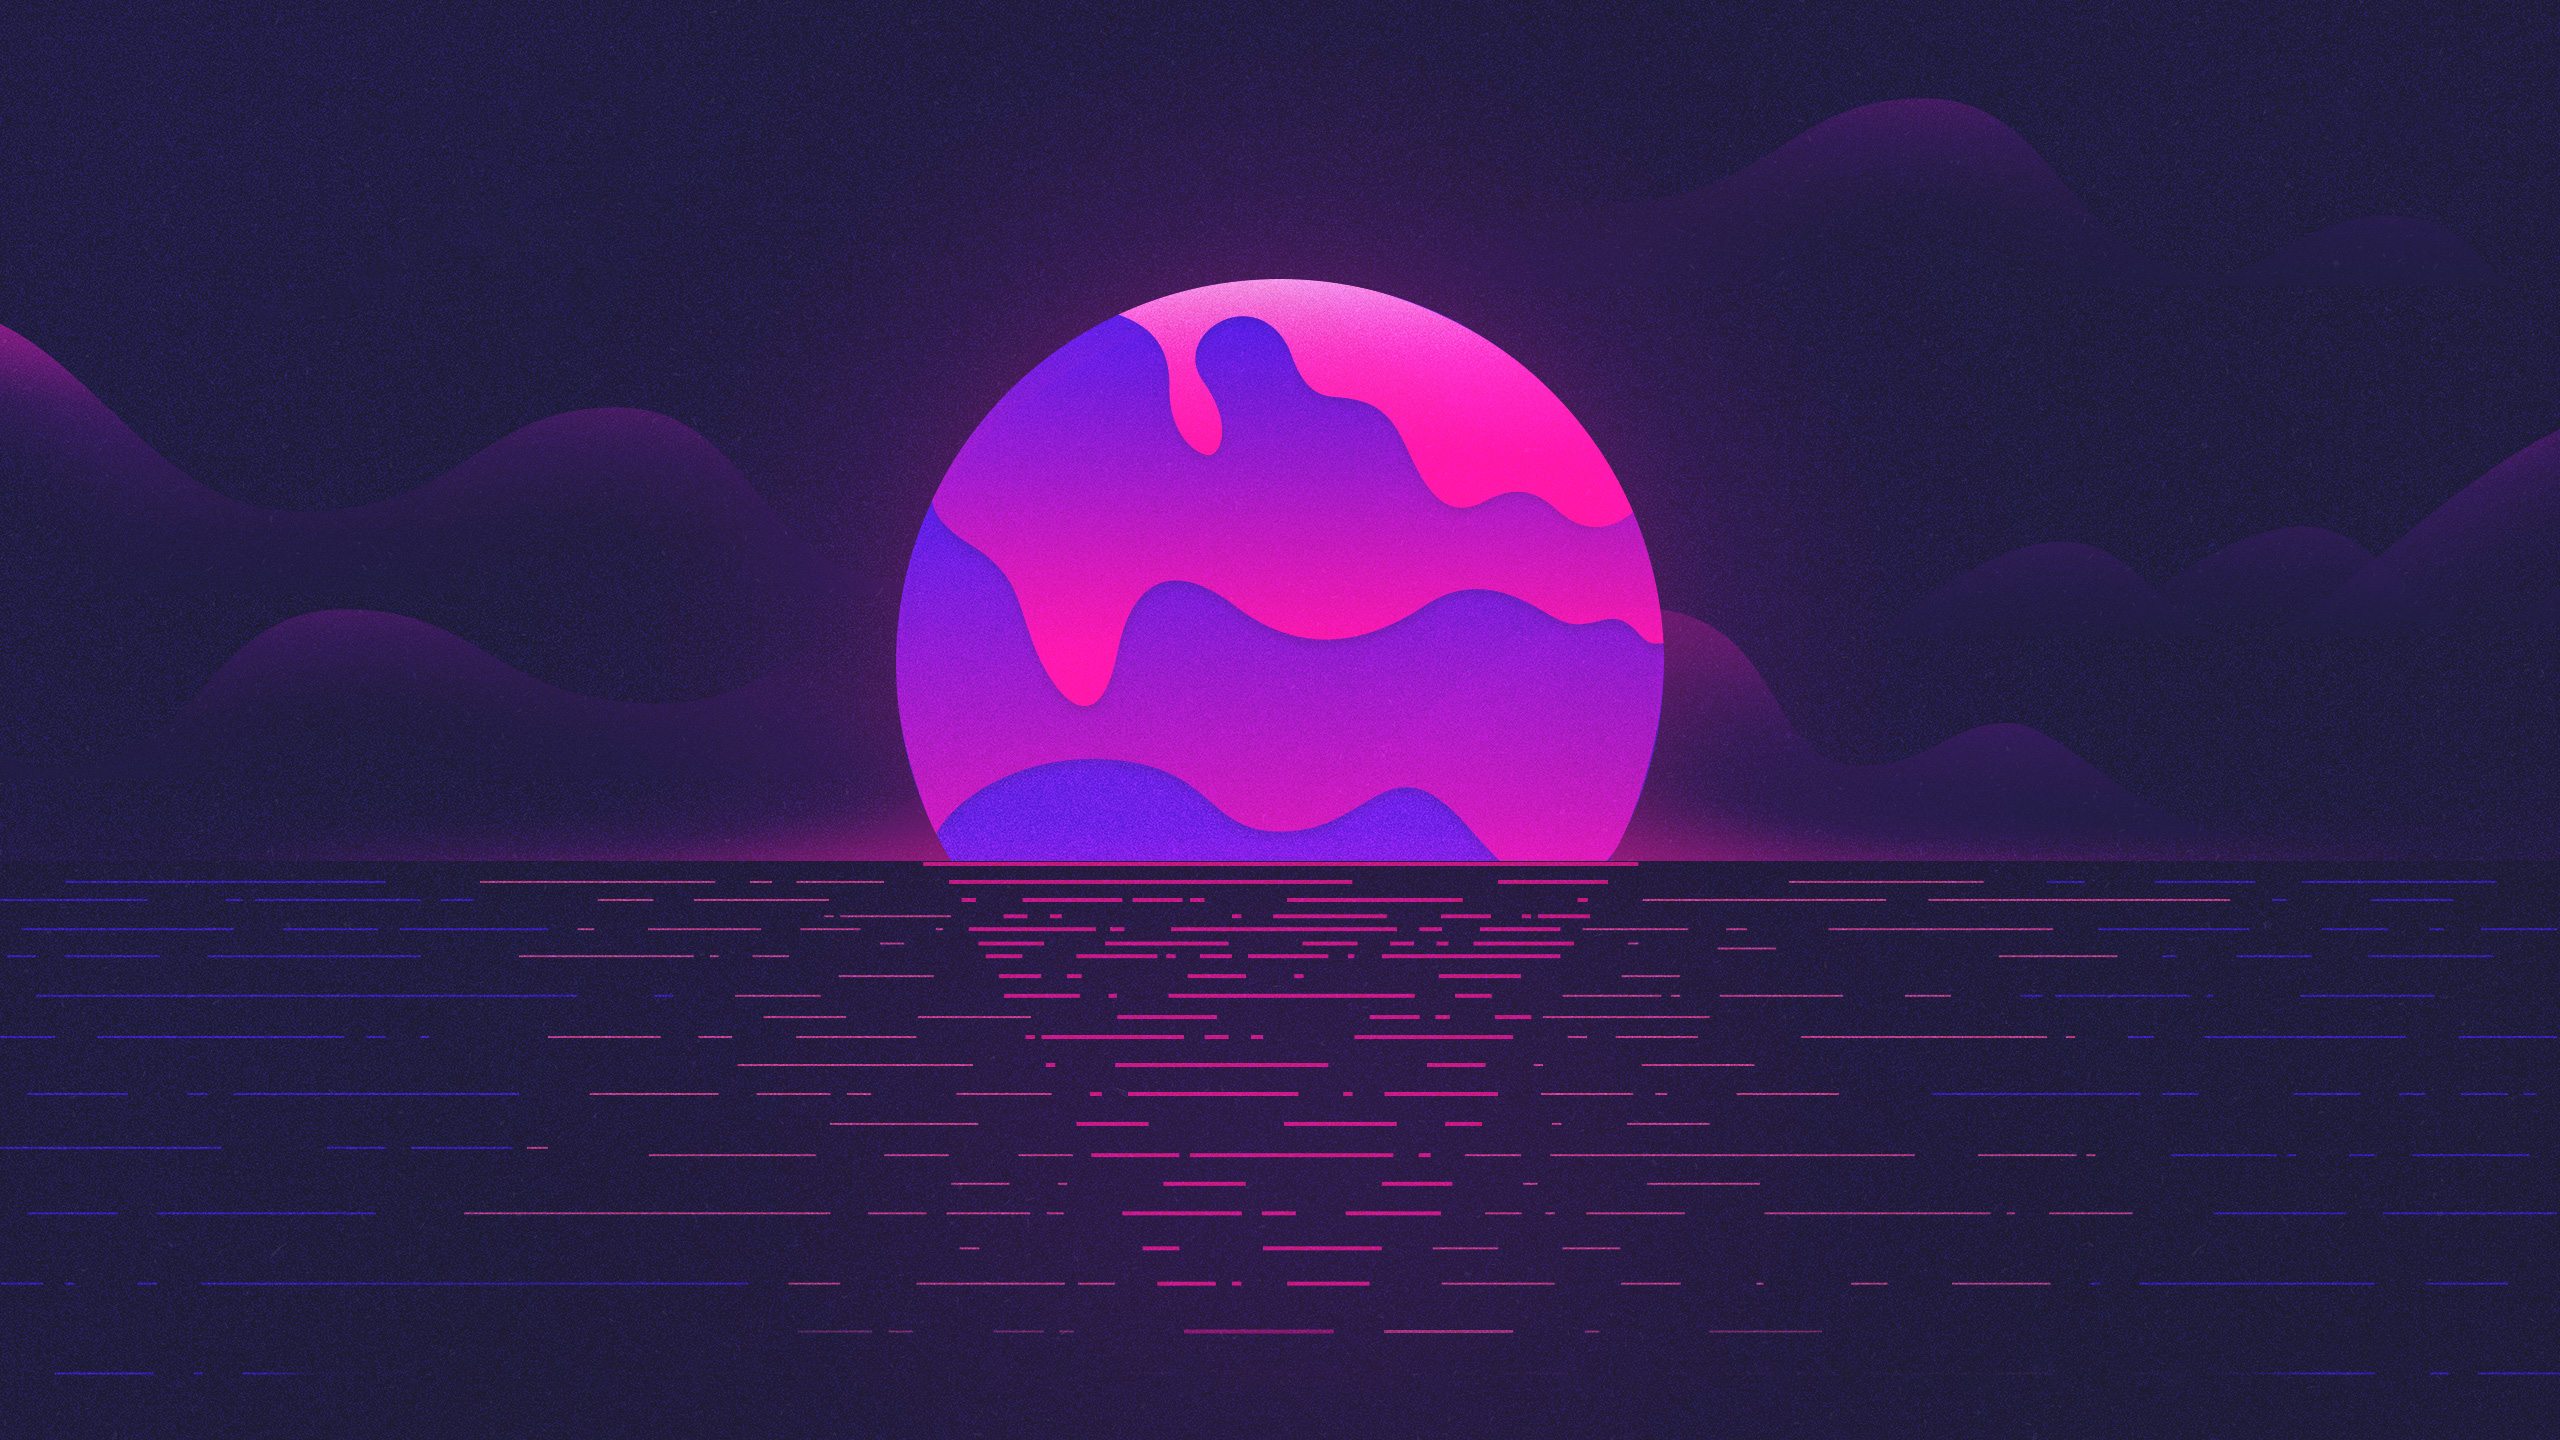 Vaporwave Steam Backgrounds Posted By Samantha Anderson